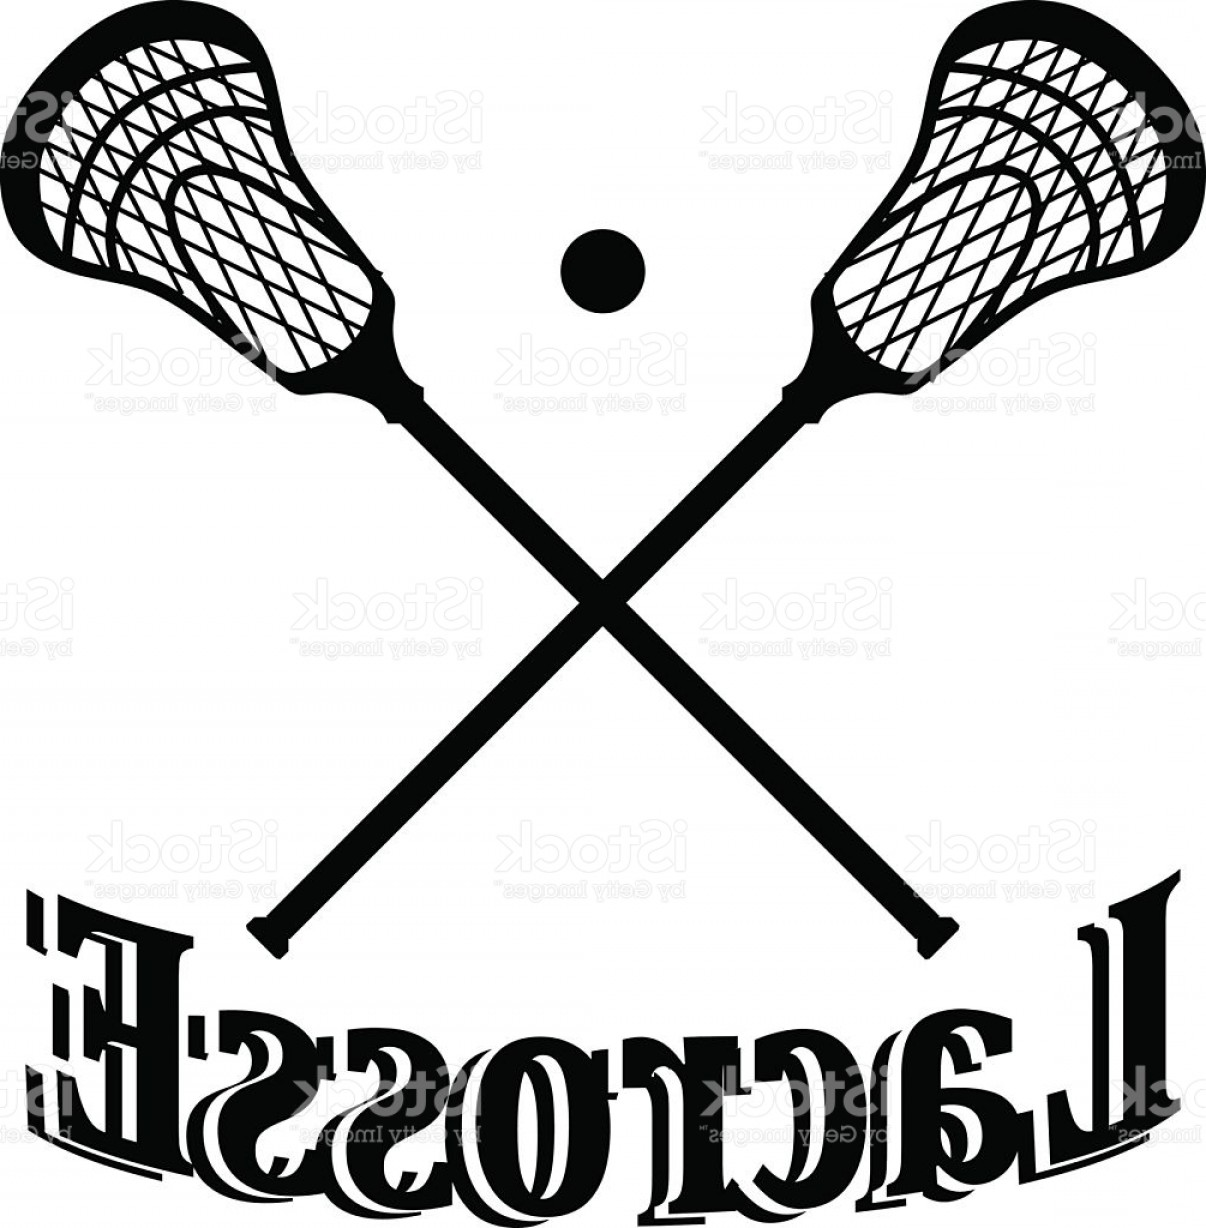 Lacrosse Stick Vector: Crossed Lacrosse Stick And Ball Vector Illustration Gm